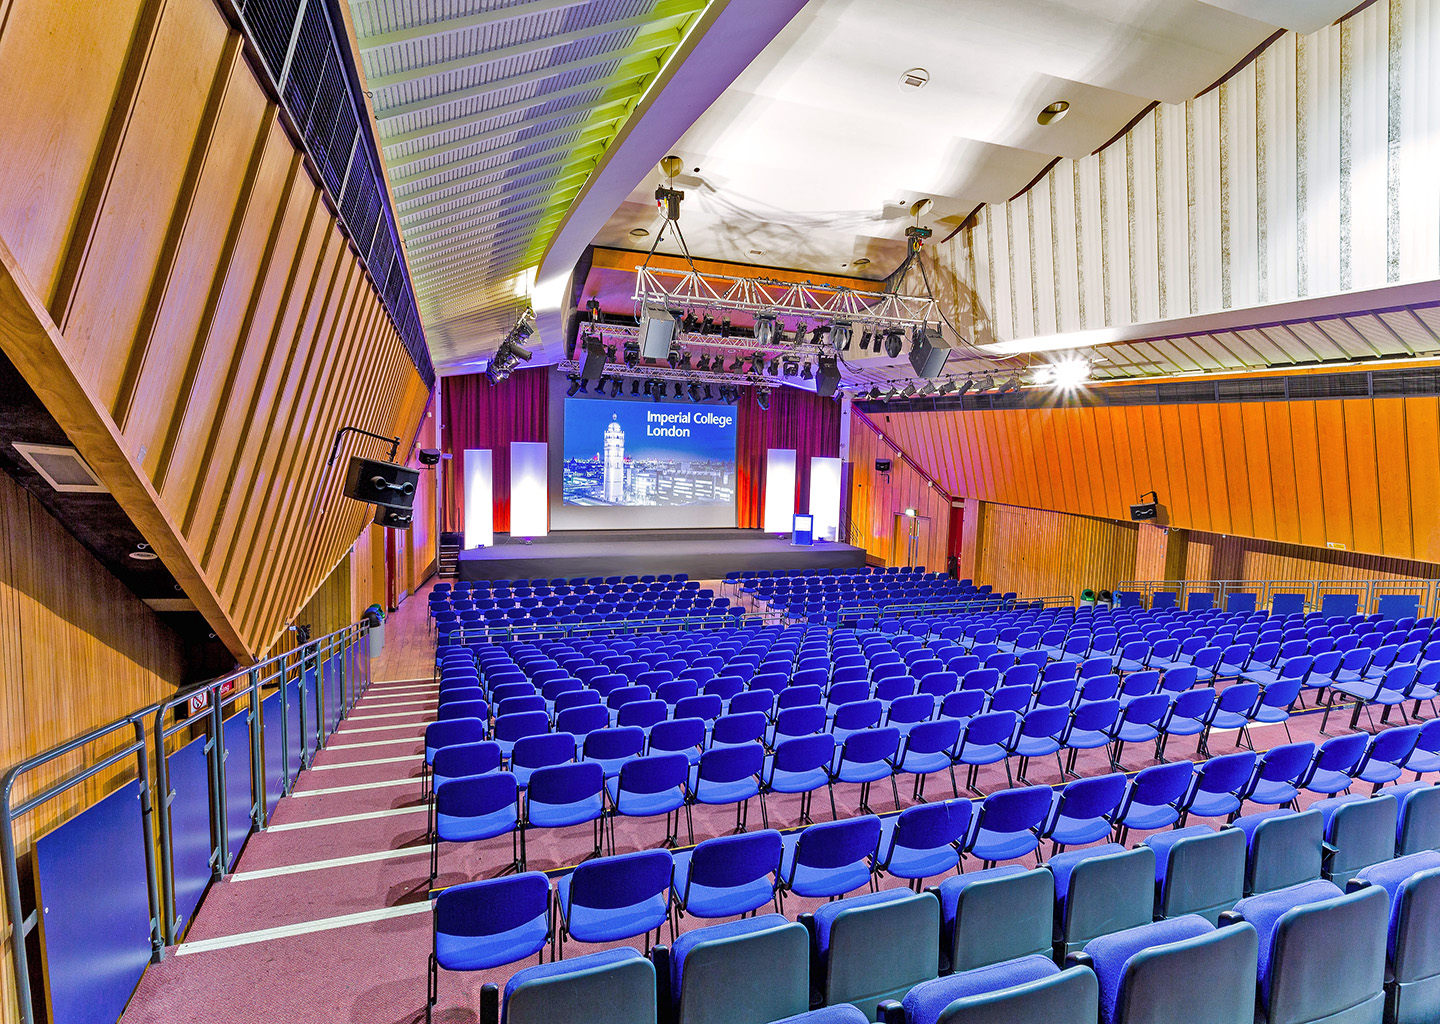 Imperial College Great Hall 1,000 seat lecture theatre